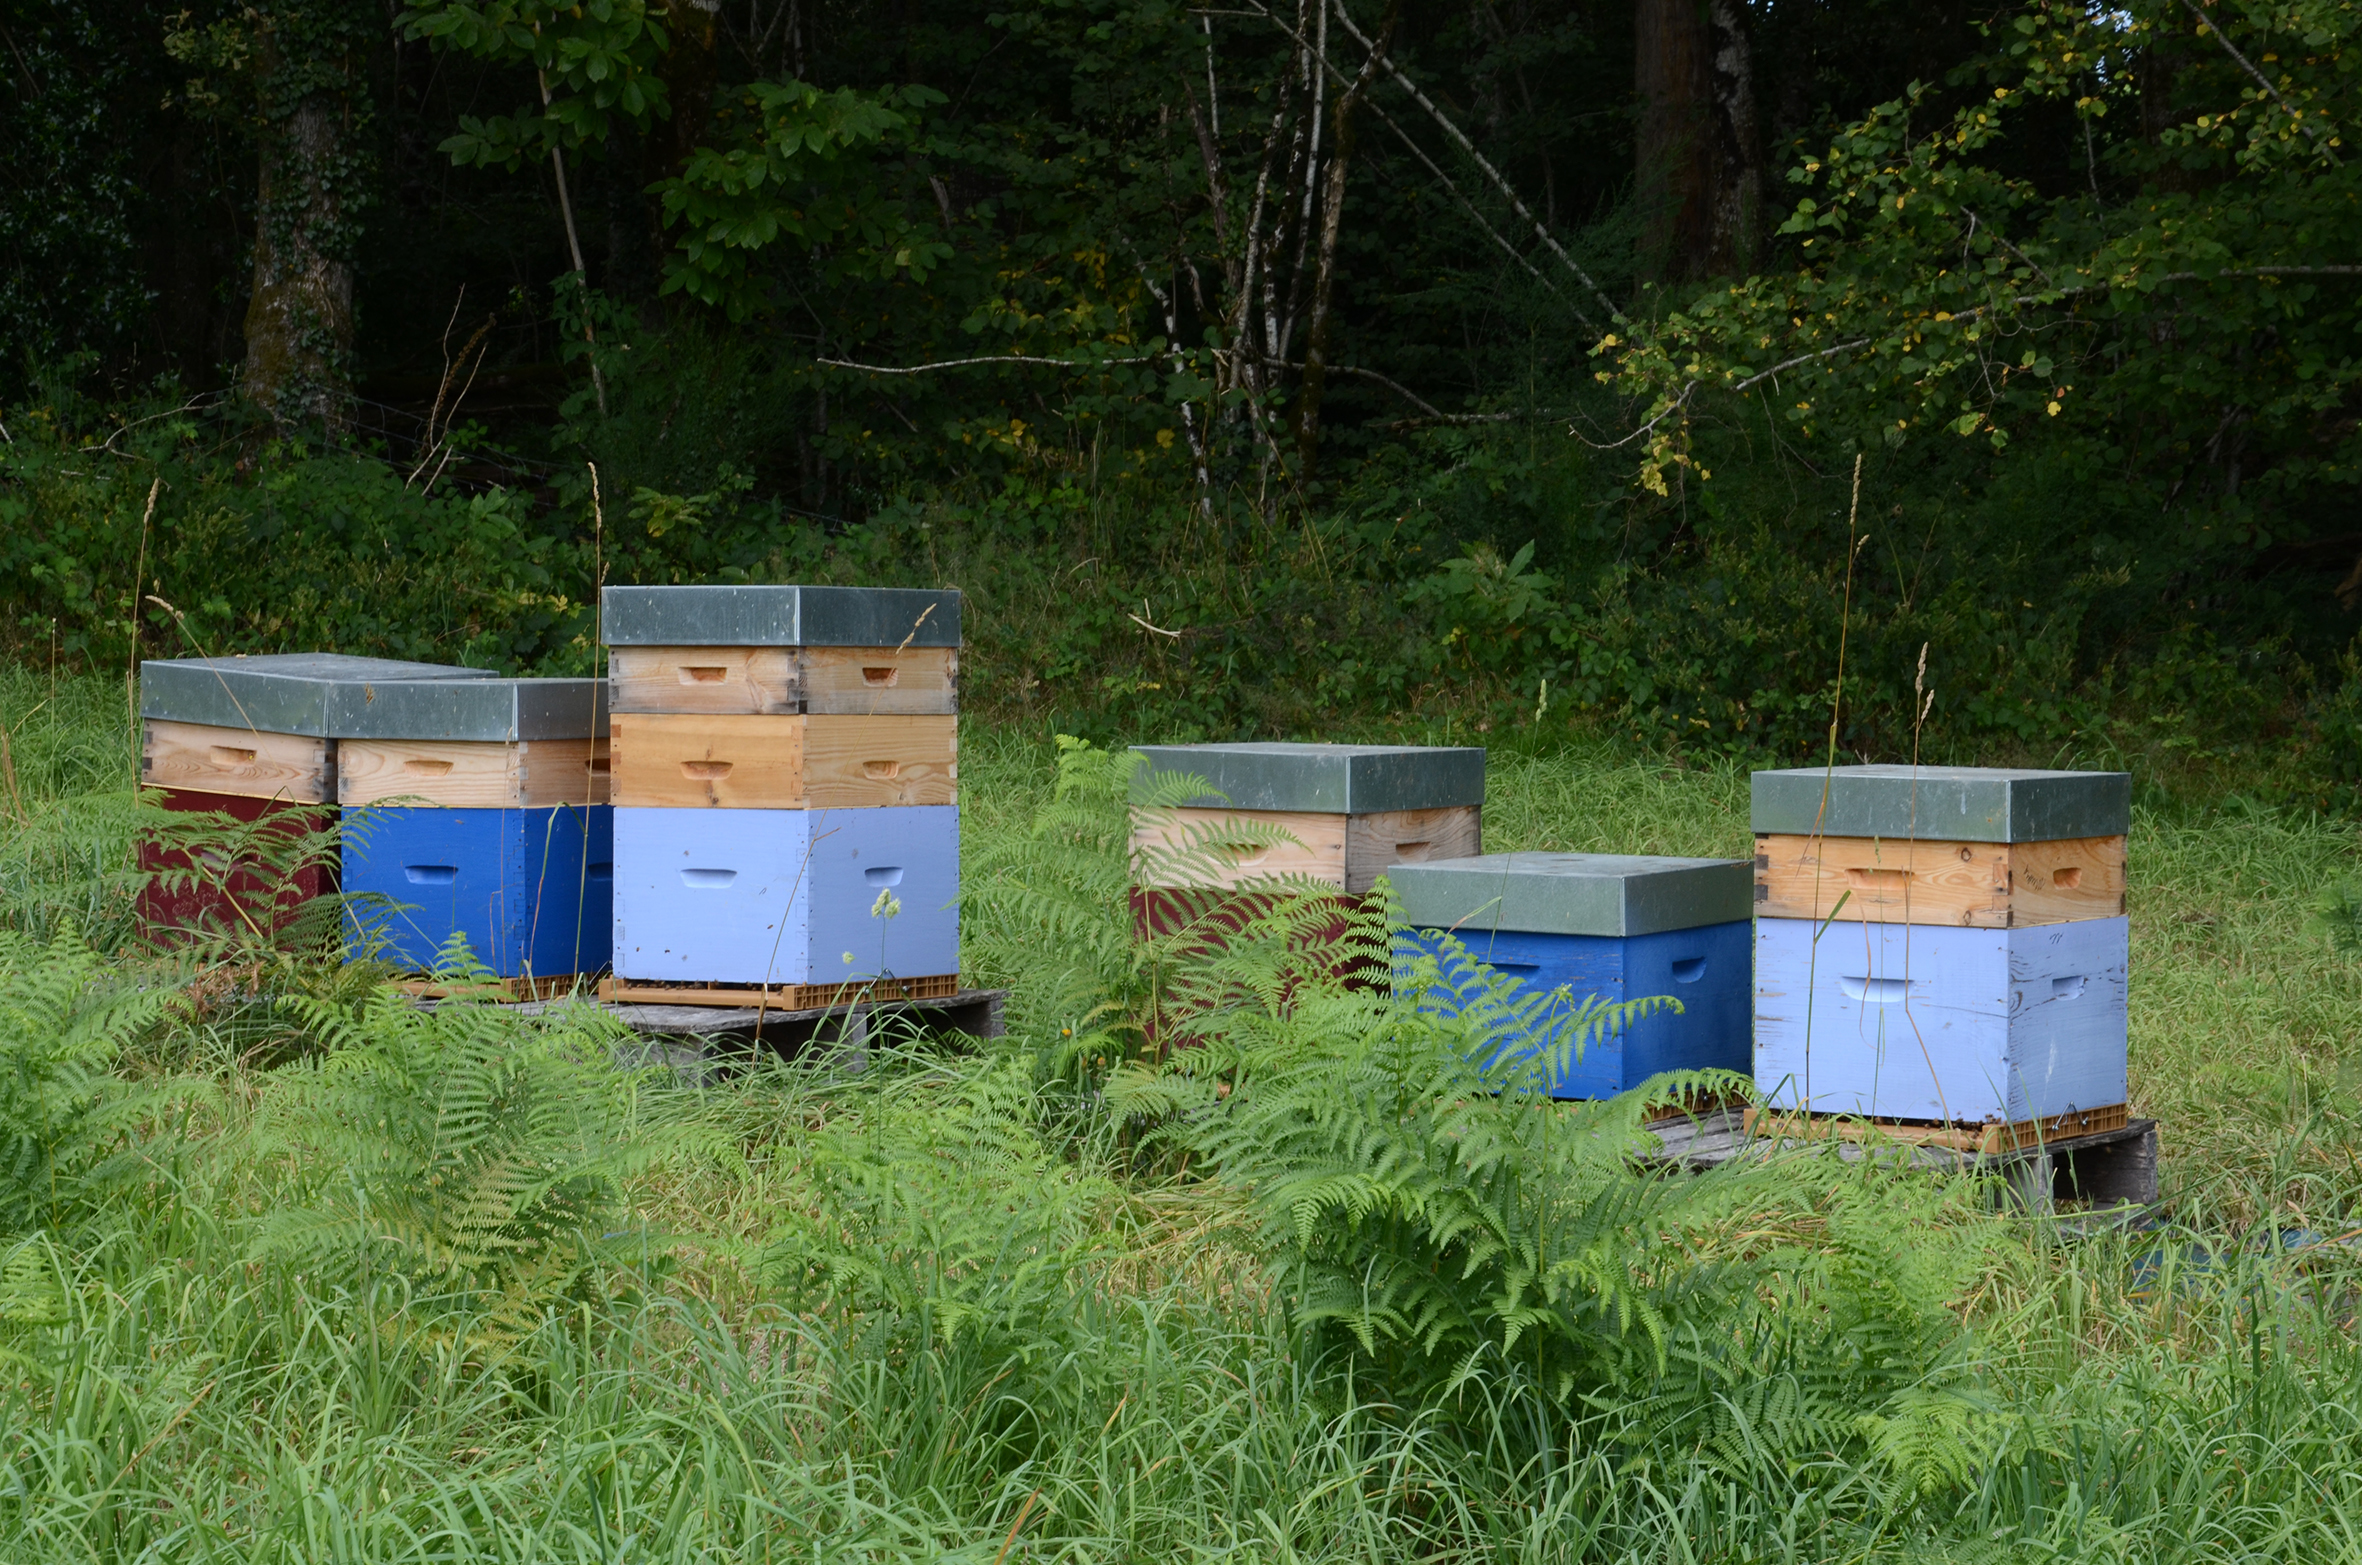 La question des abeilles mobilise